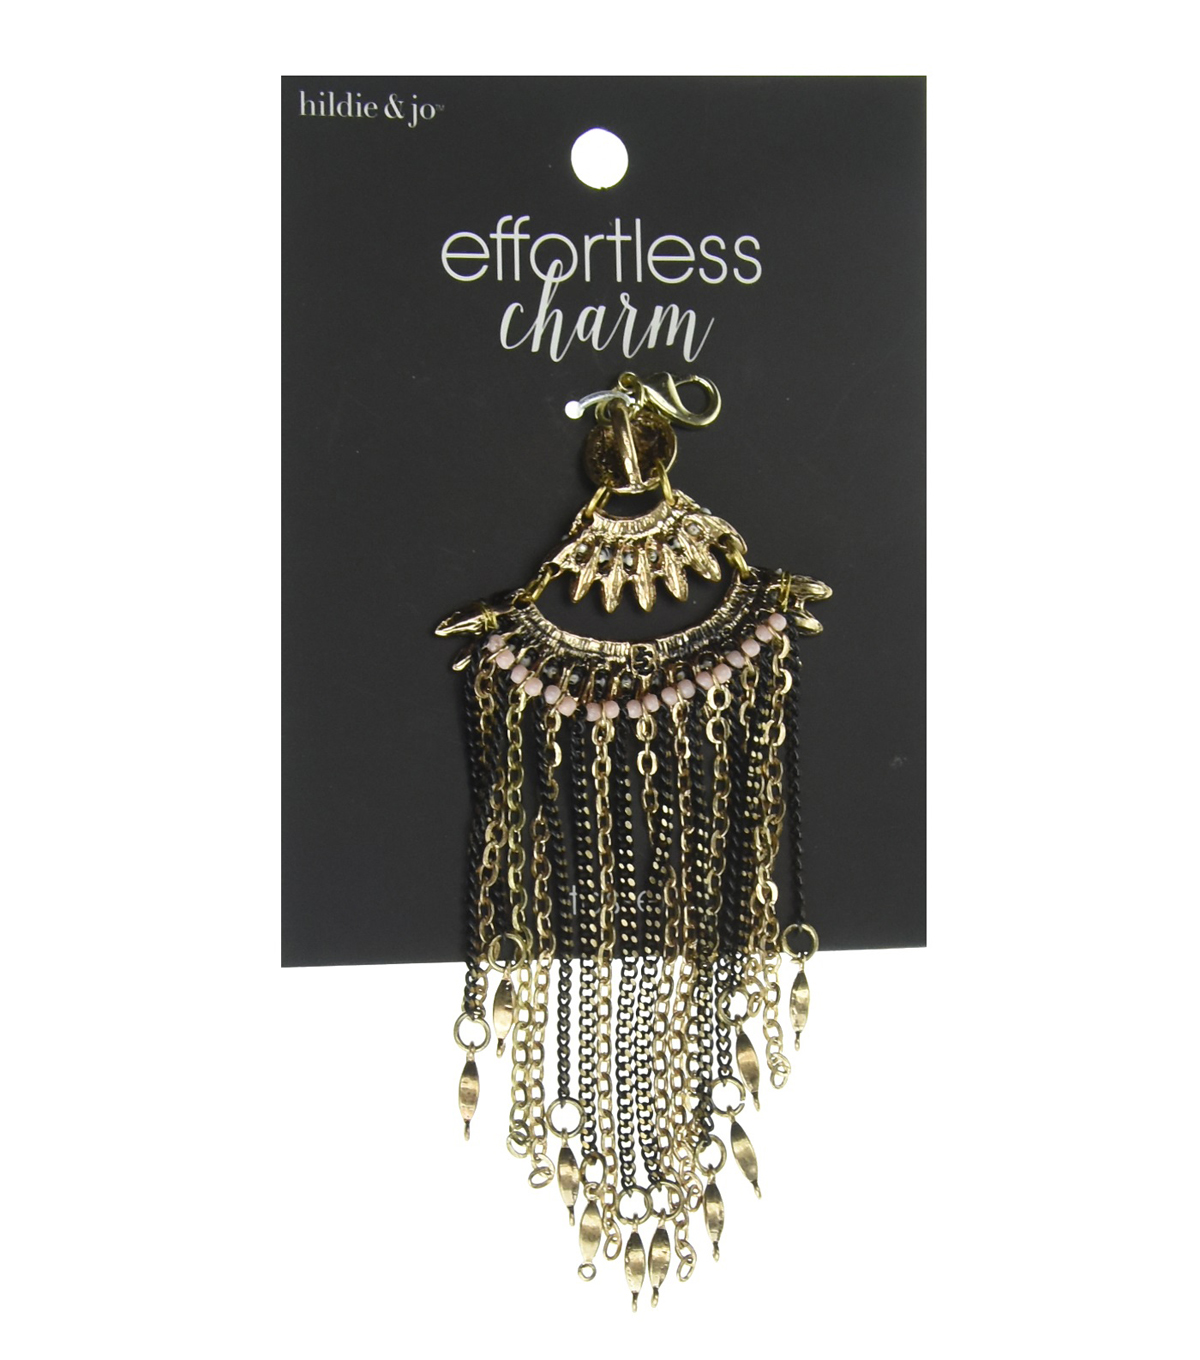 hildie & jo™ Effortless Charm Fan Gold Tassel